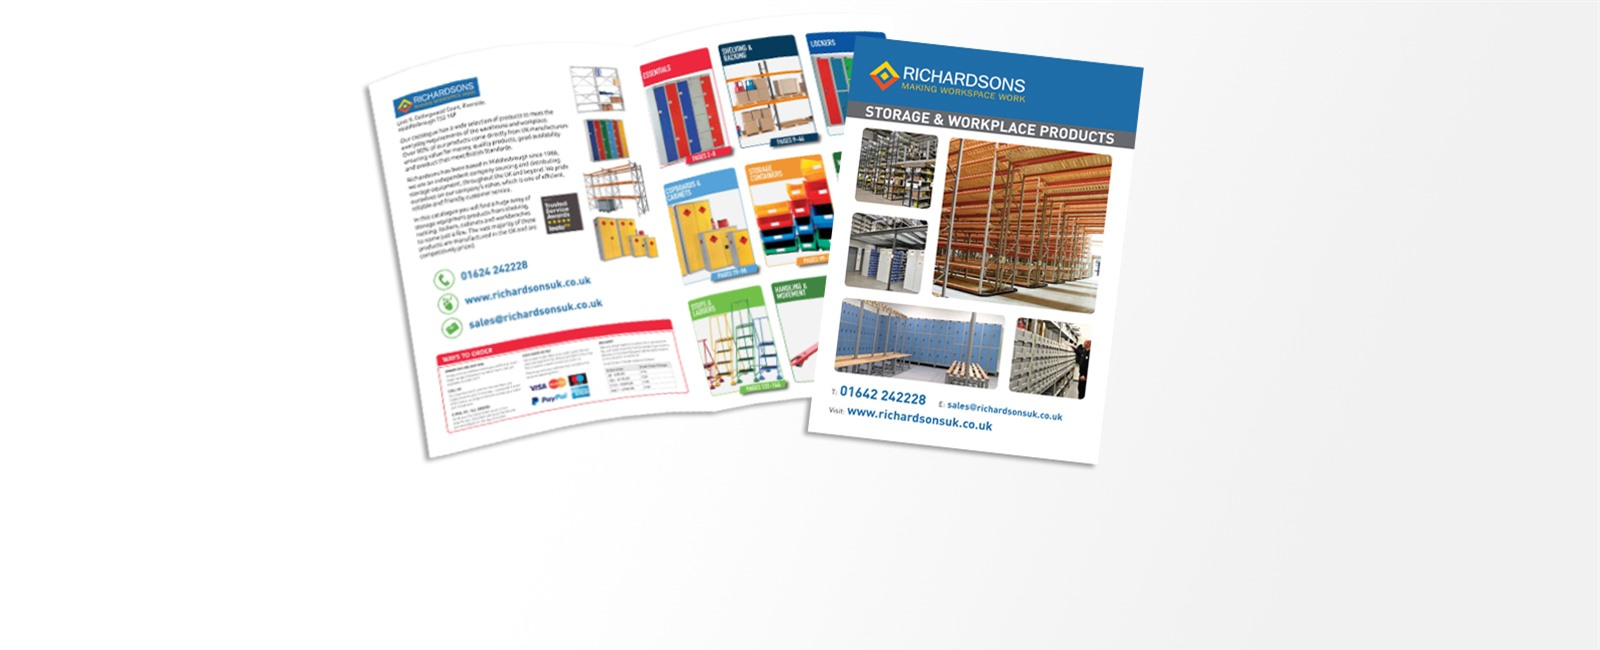 View our online catalogues